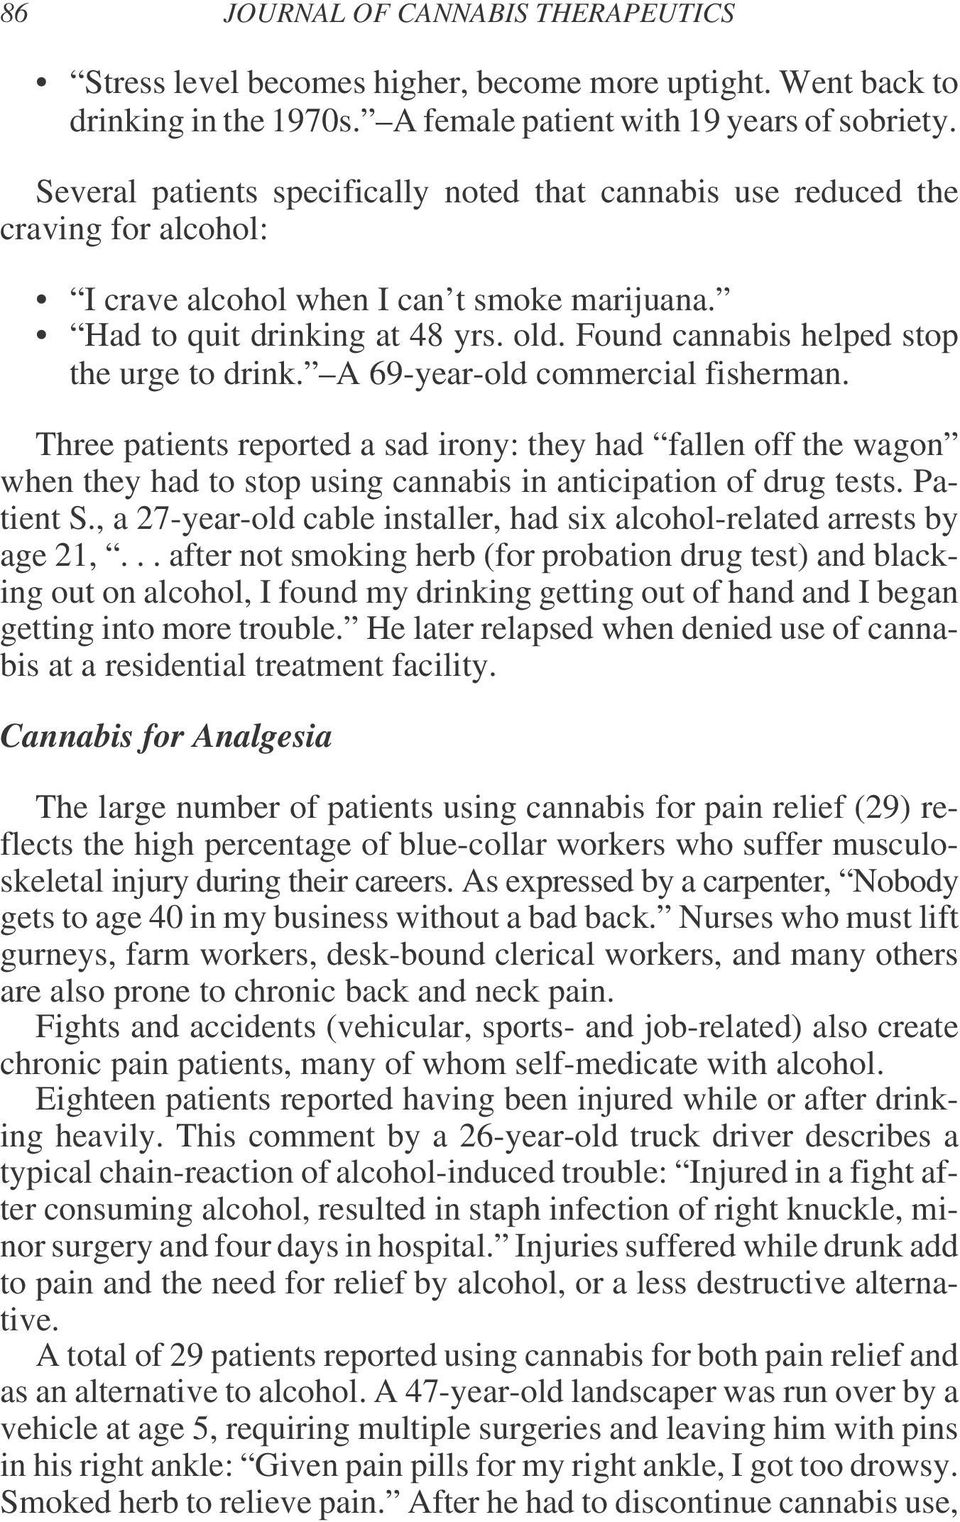 Found cannabis helped stop the urge to drink. A 69-year-old commercial fisherman.